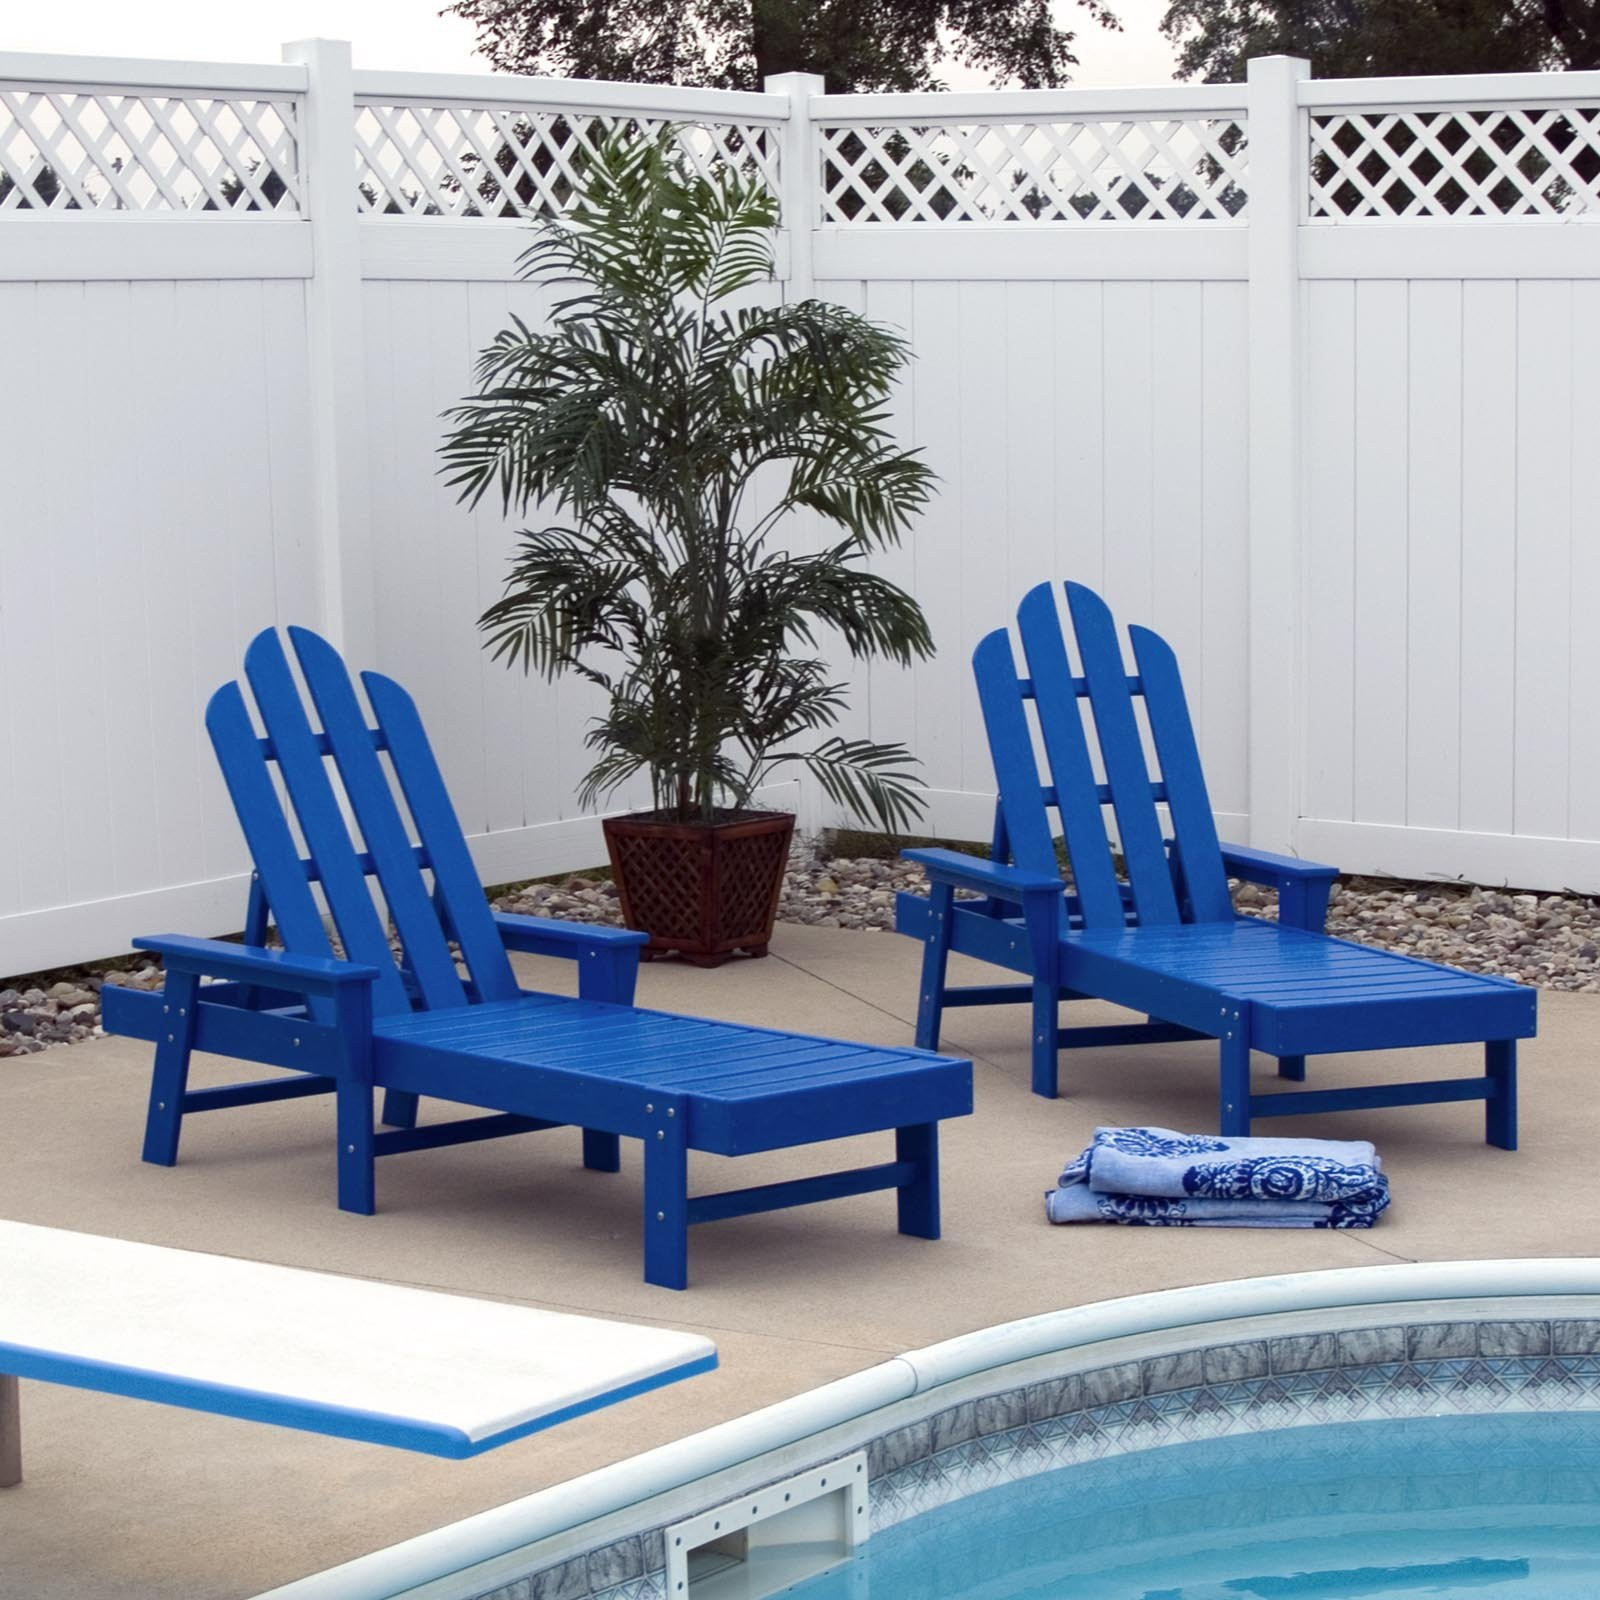 Plastic Vases Walmart Of Walmart Lounge Pool Elegant 30 top Plastic Lounge Chairs Walmart with Walmart Lounge Pool Elegant 30 top Plastic Lounge Chairs Walmart Ideas Onionskeen Stock